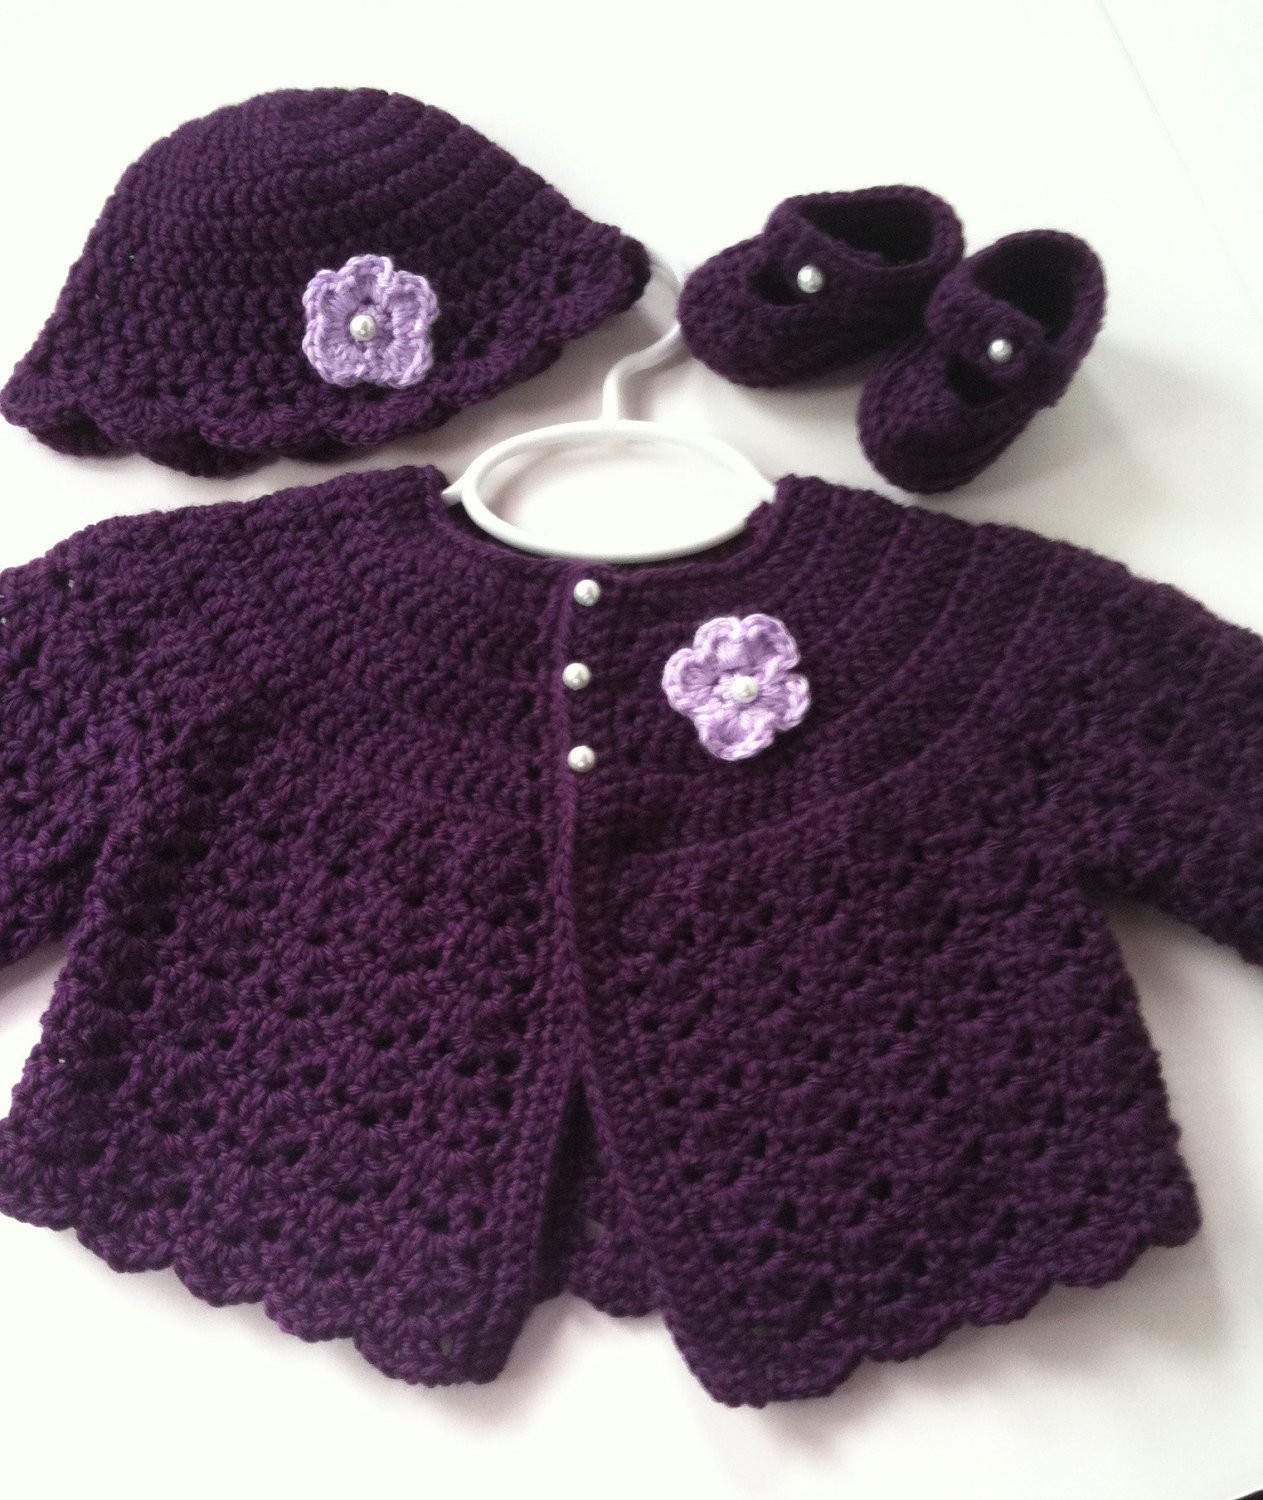 Unique Chandeliers & Pendant Lights Crochet Baby Sweater Sets Of Charming 43 Photos Crochet Baby Sweater Sets